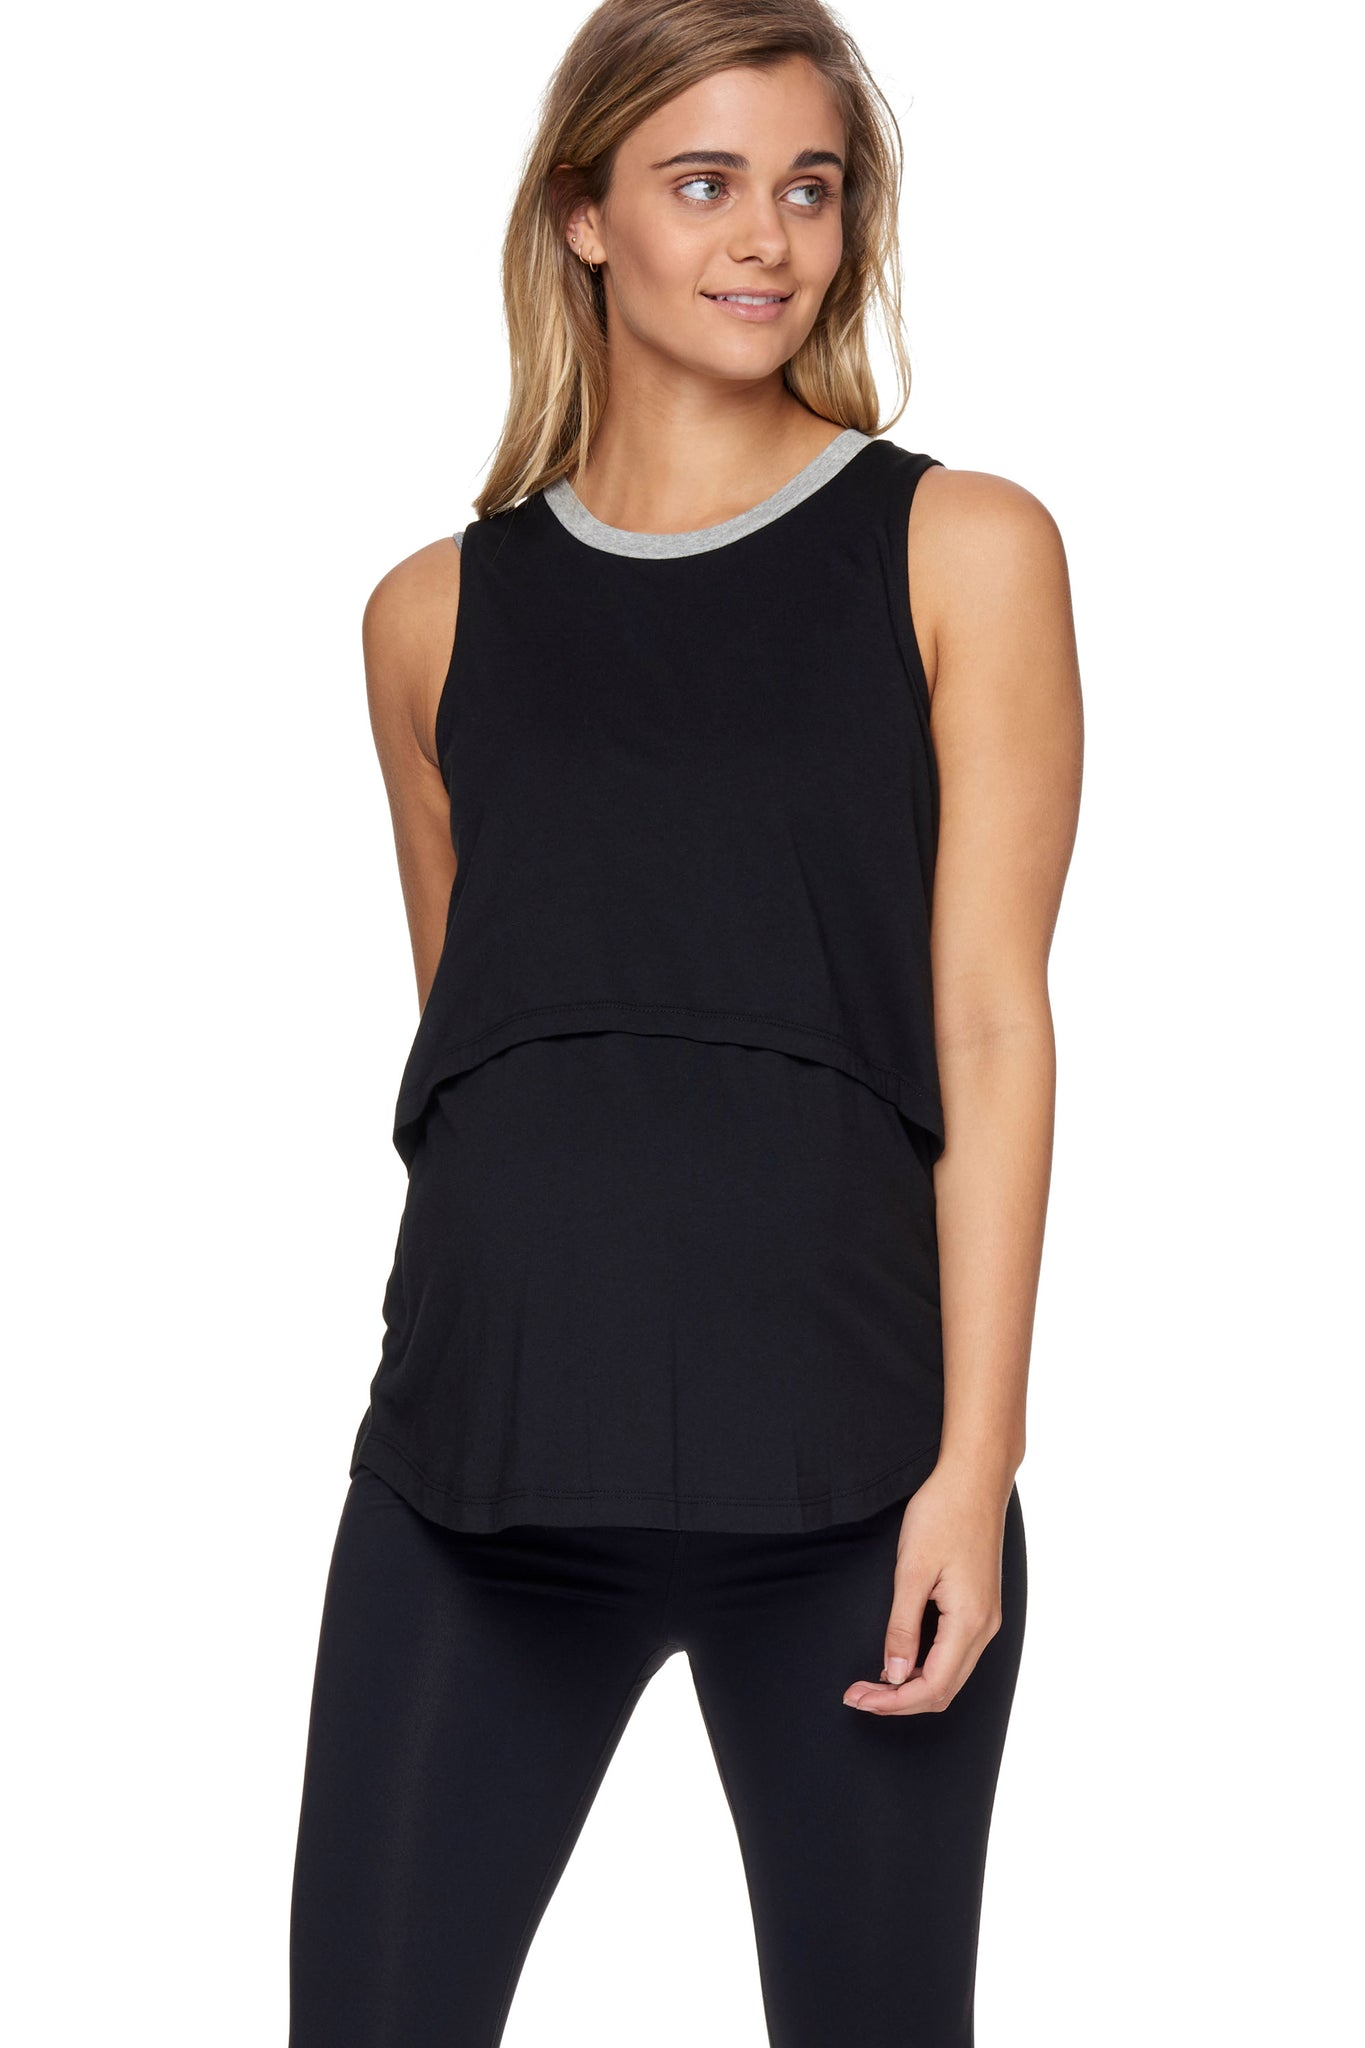 Maternity & Nursing Tank Top - Black 1